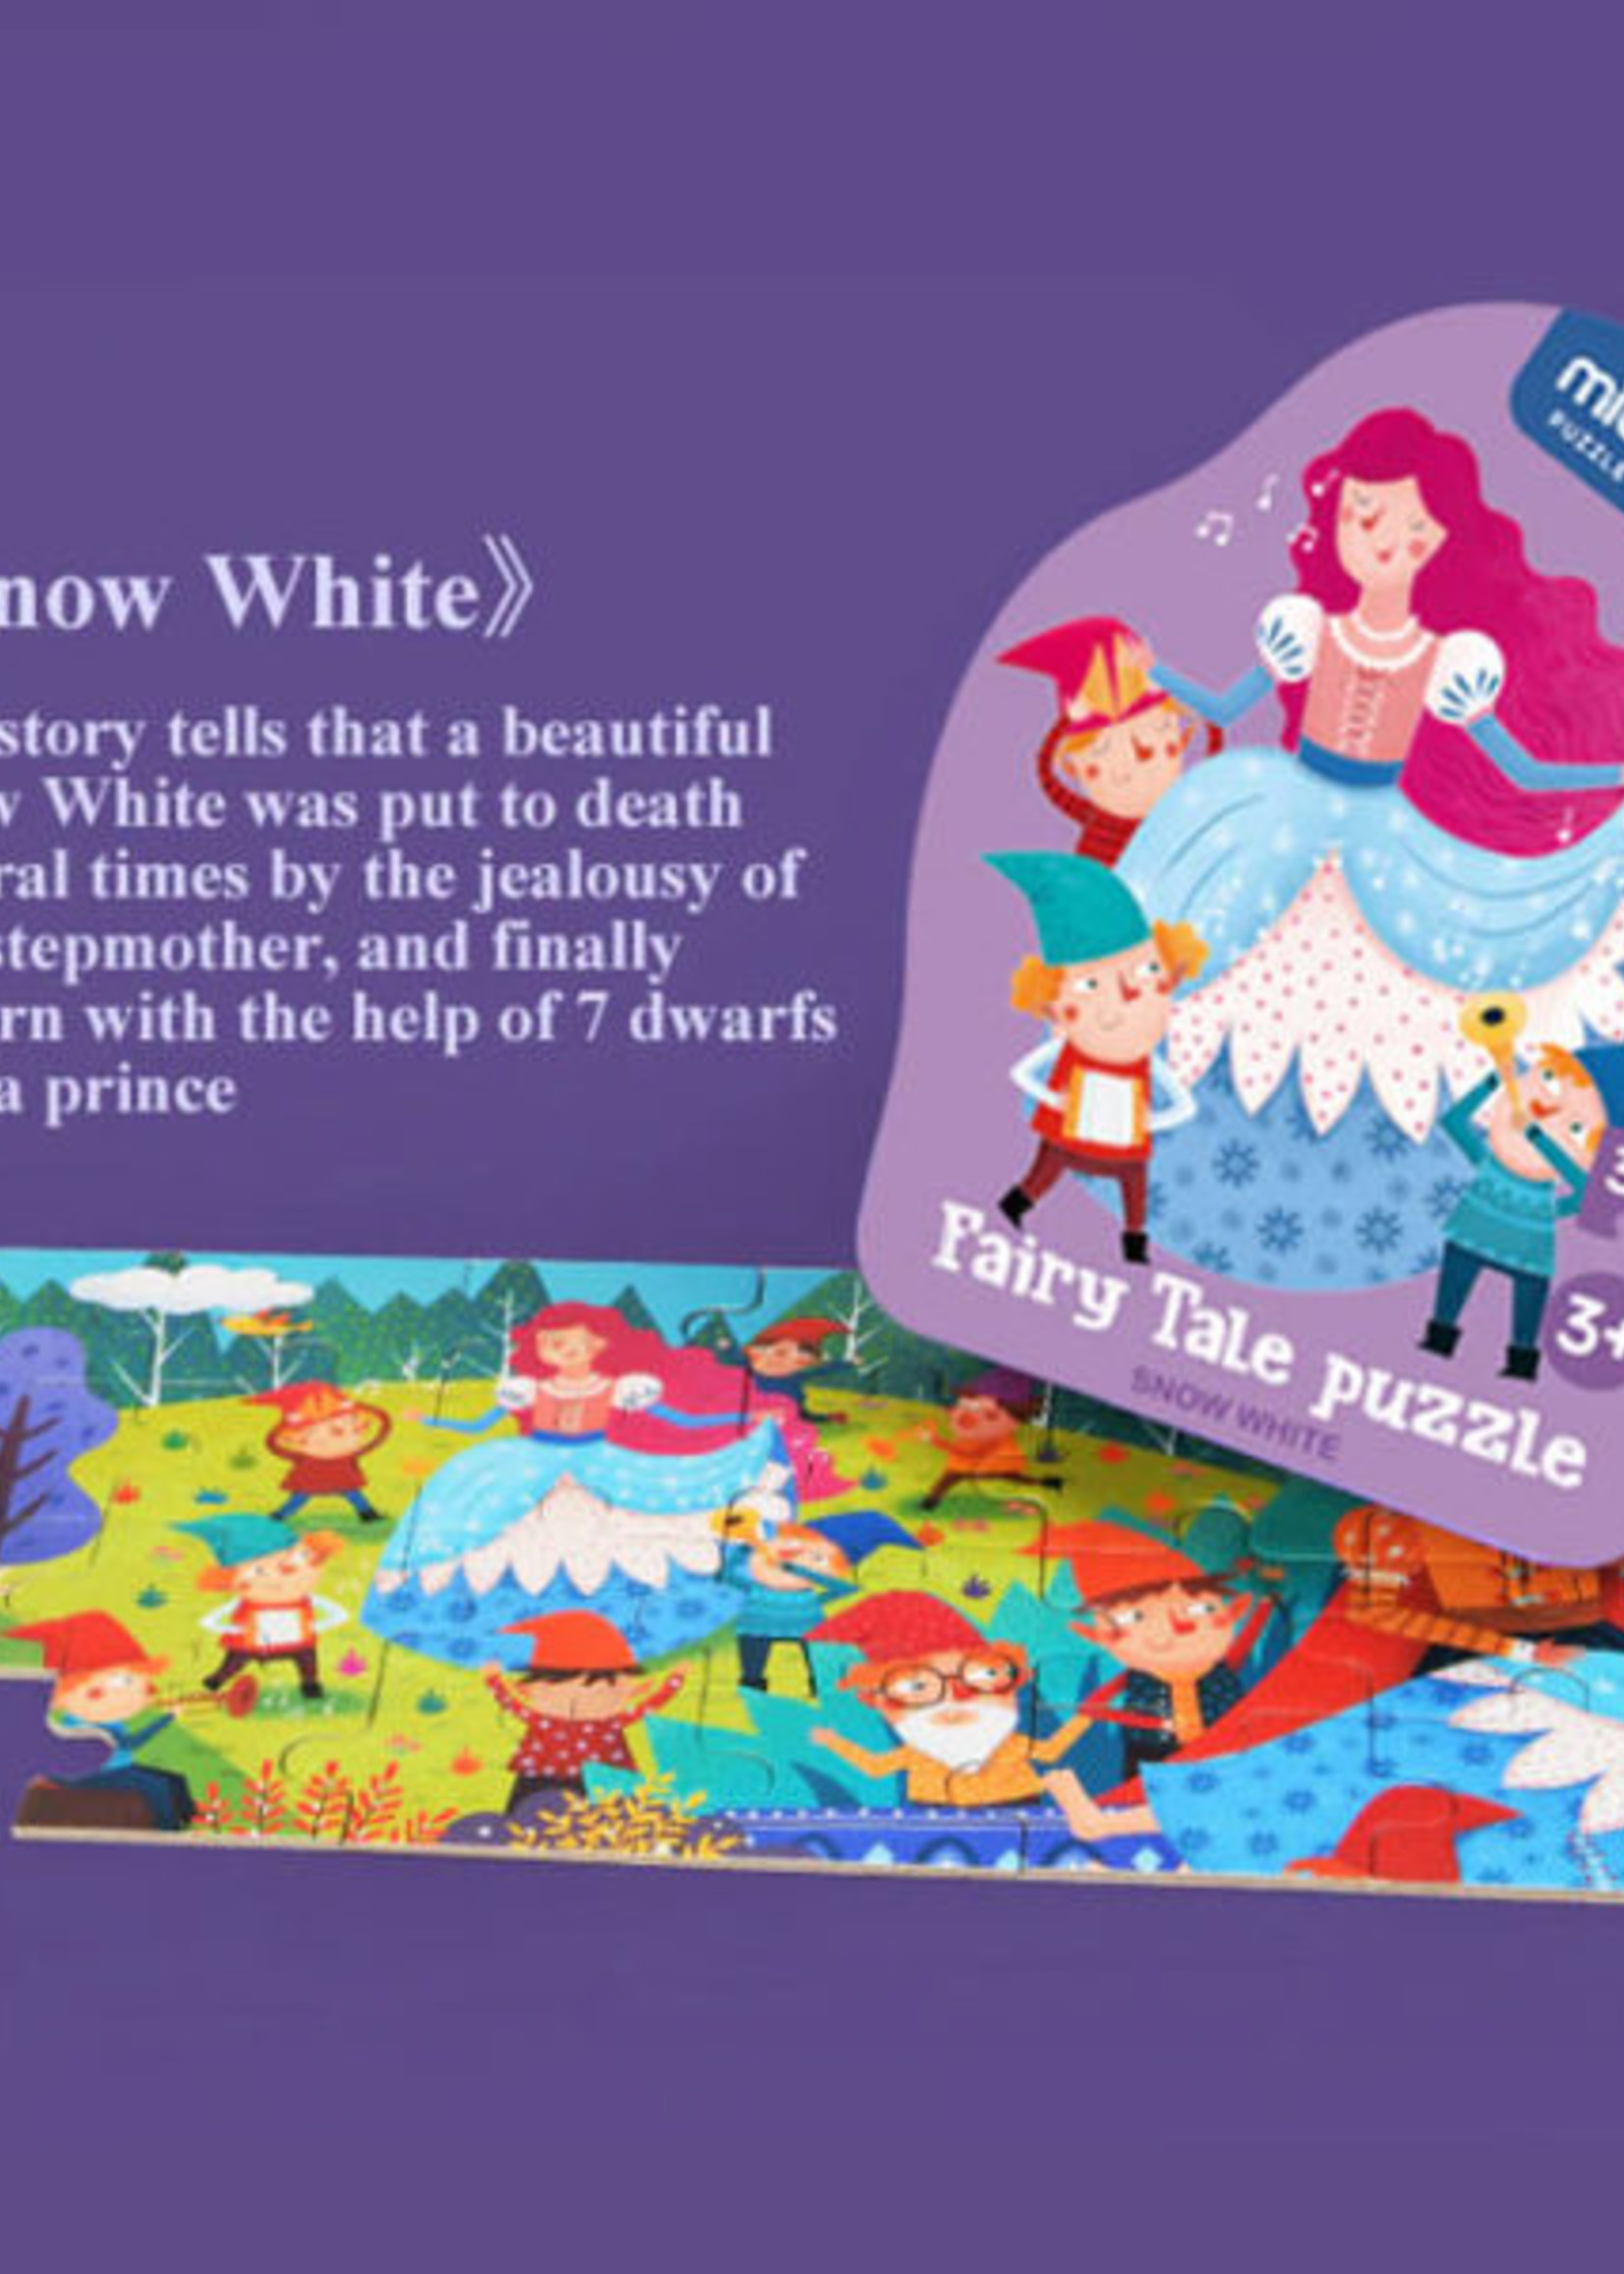 Mideer Mideer-AW20 MD3059 Fairy Tale Puzzle - Snow White 36 pcs